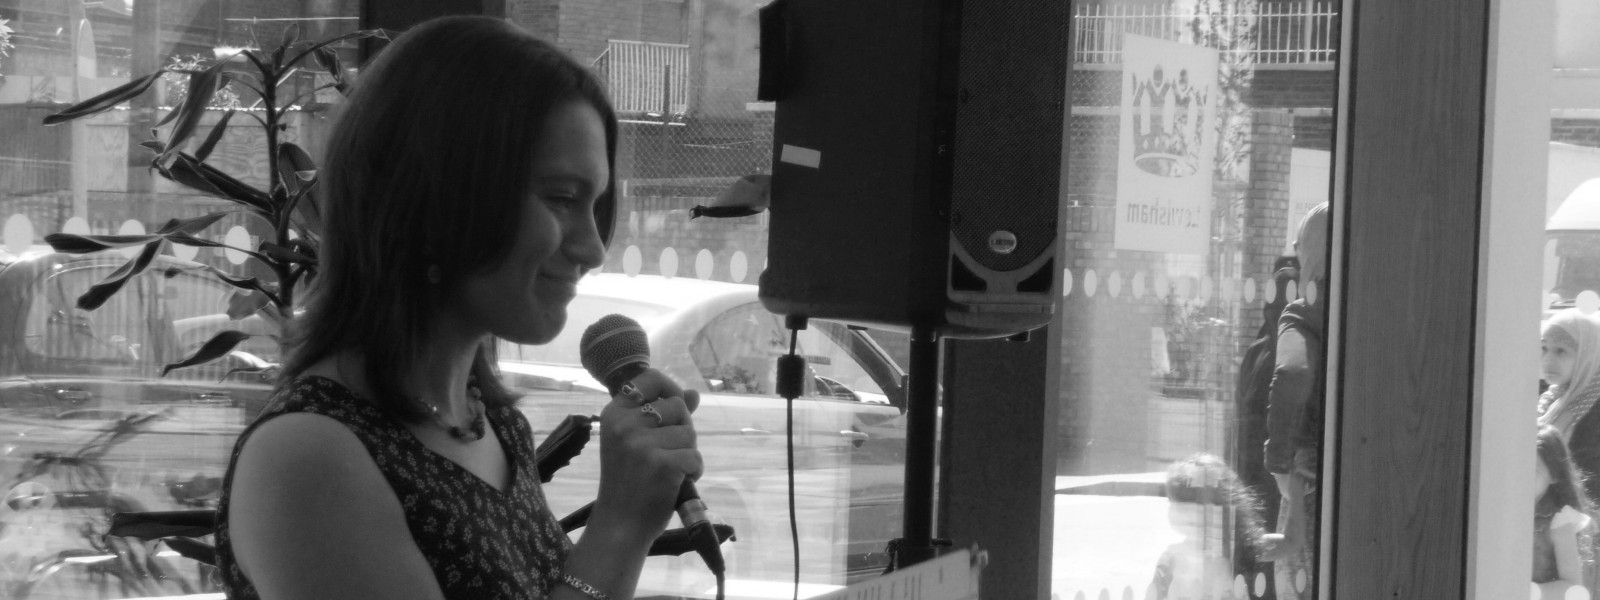 Poetry reading at Deptford Lounge, London